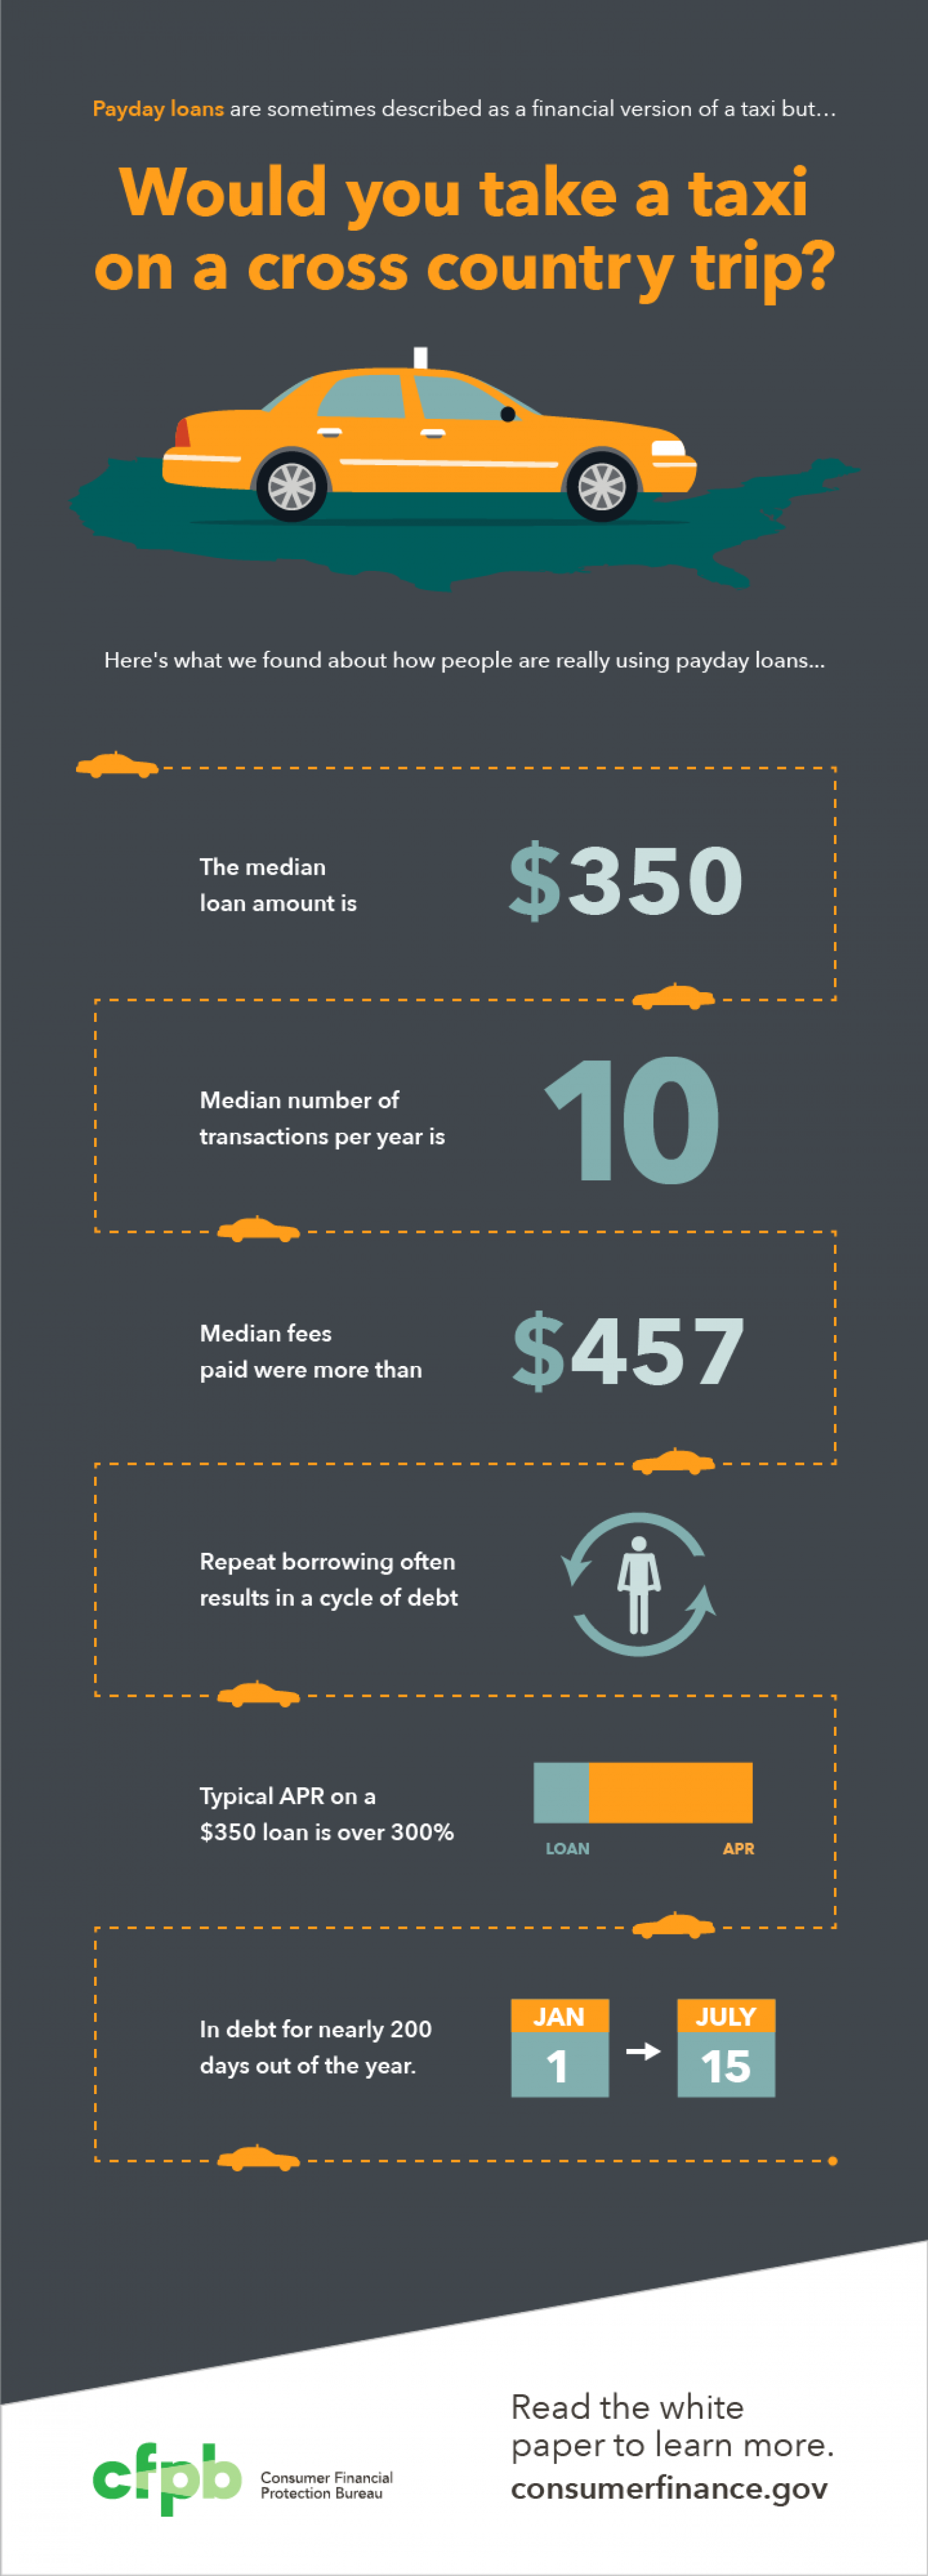 Would you take a taxi on a cross country trip? Infographic